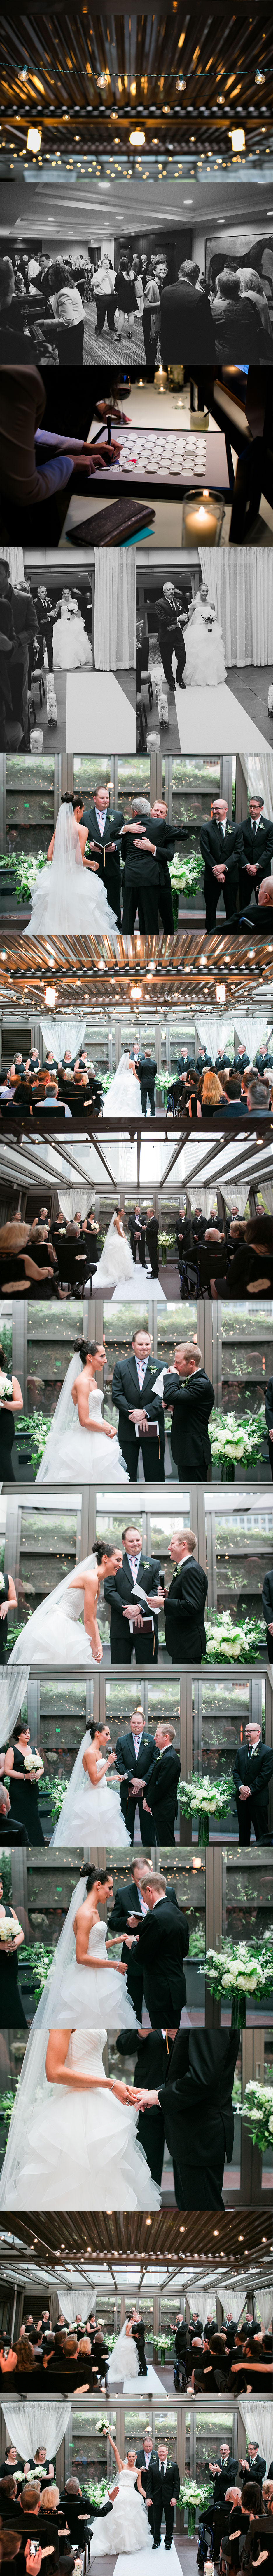 Hotel 1000 Wedding Ceremony by Michelle Newell Photography